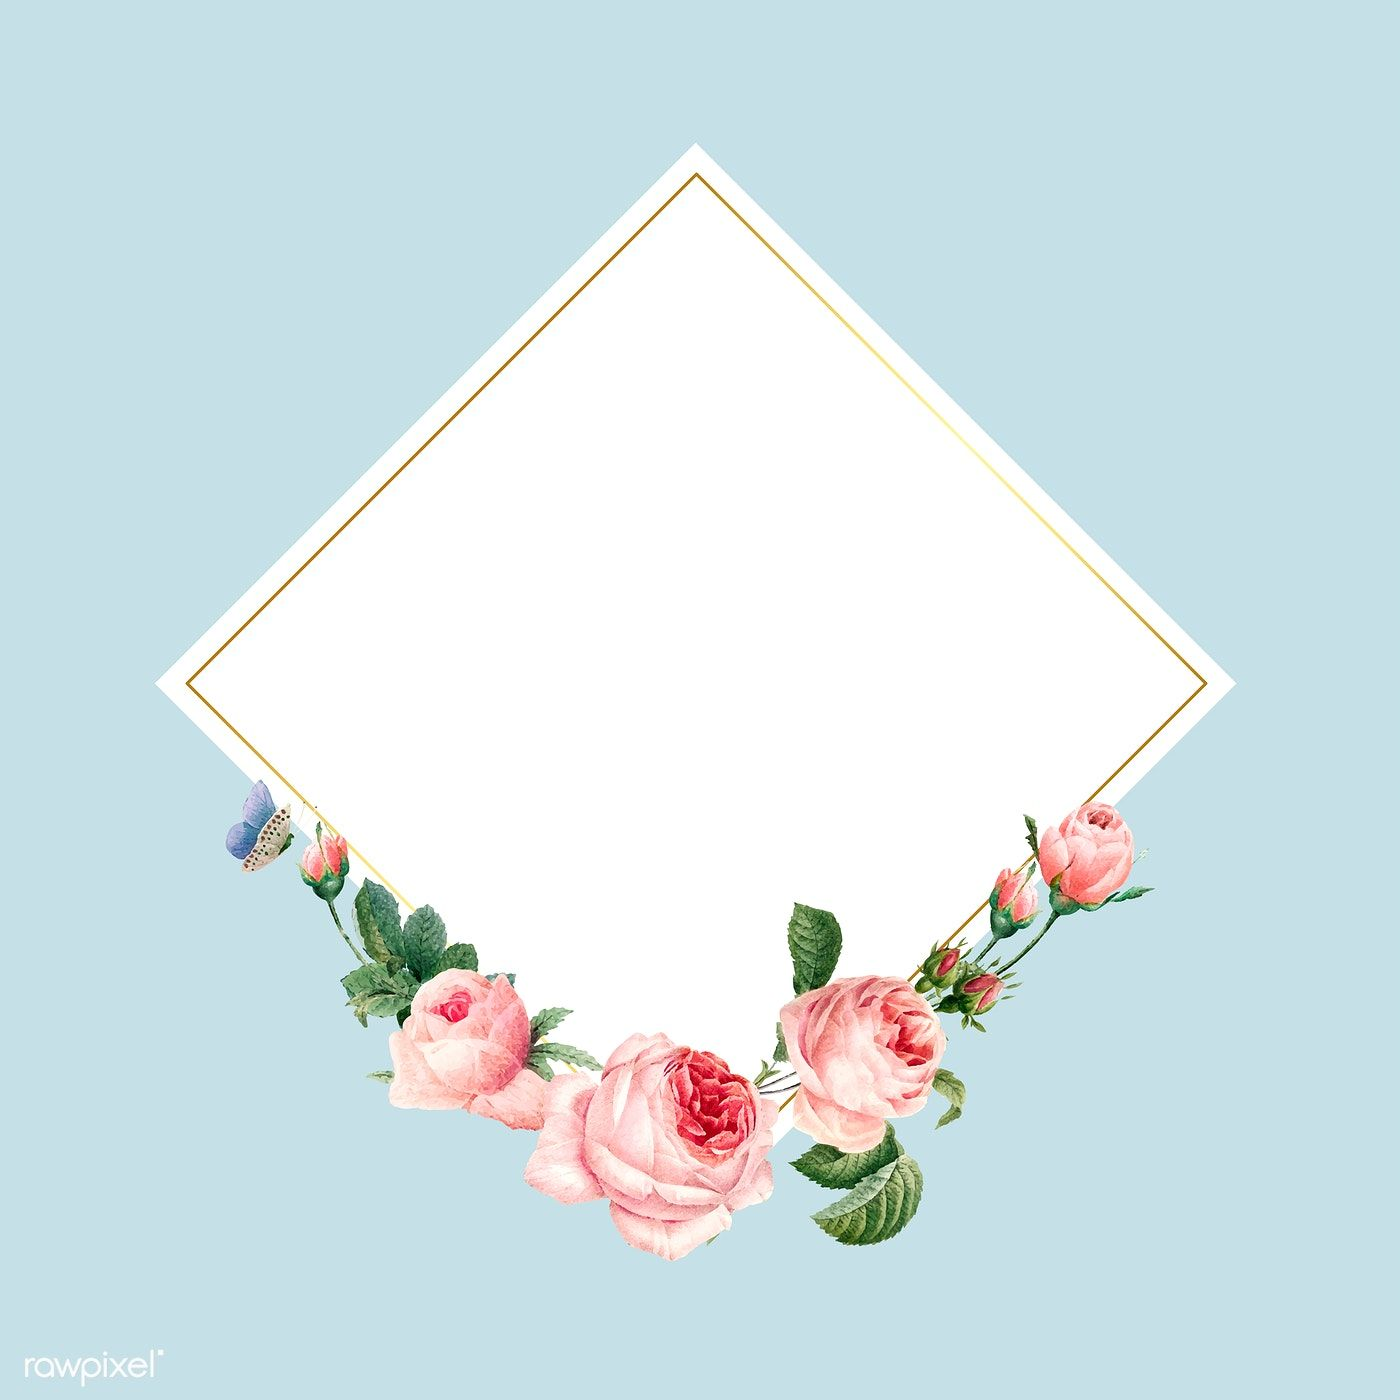 Blank Square Pink Roses Frame On Blue Background Vector Free Image By Rawpixel Com Busbus Rose Frame Blue Background Wallpapers Pastel Blue Background